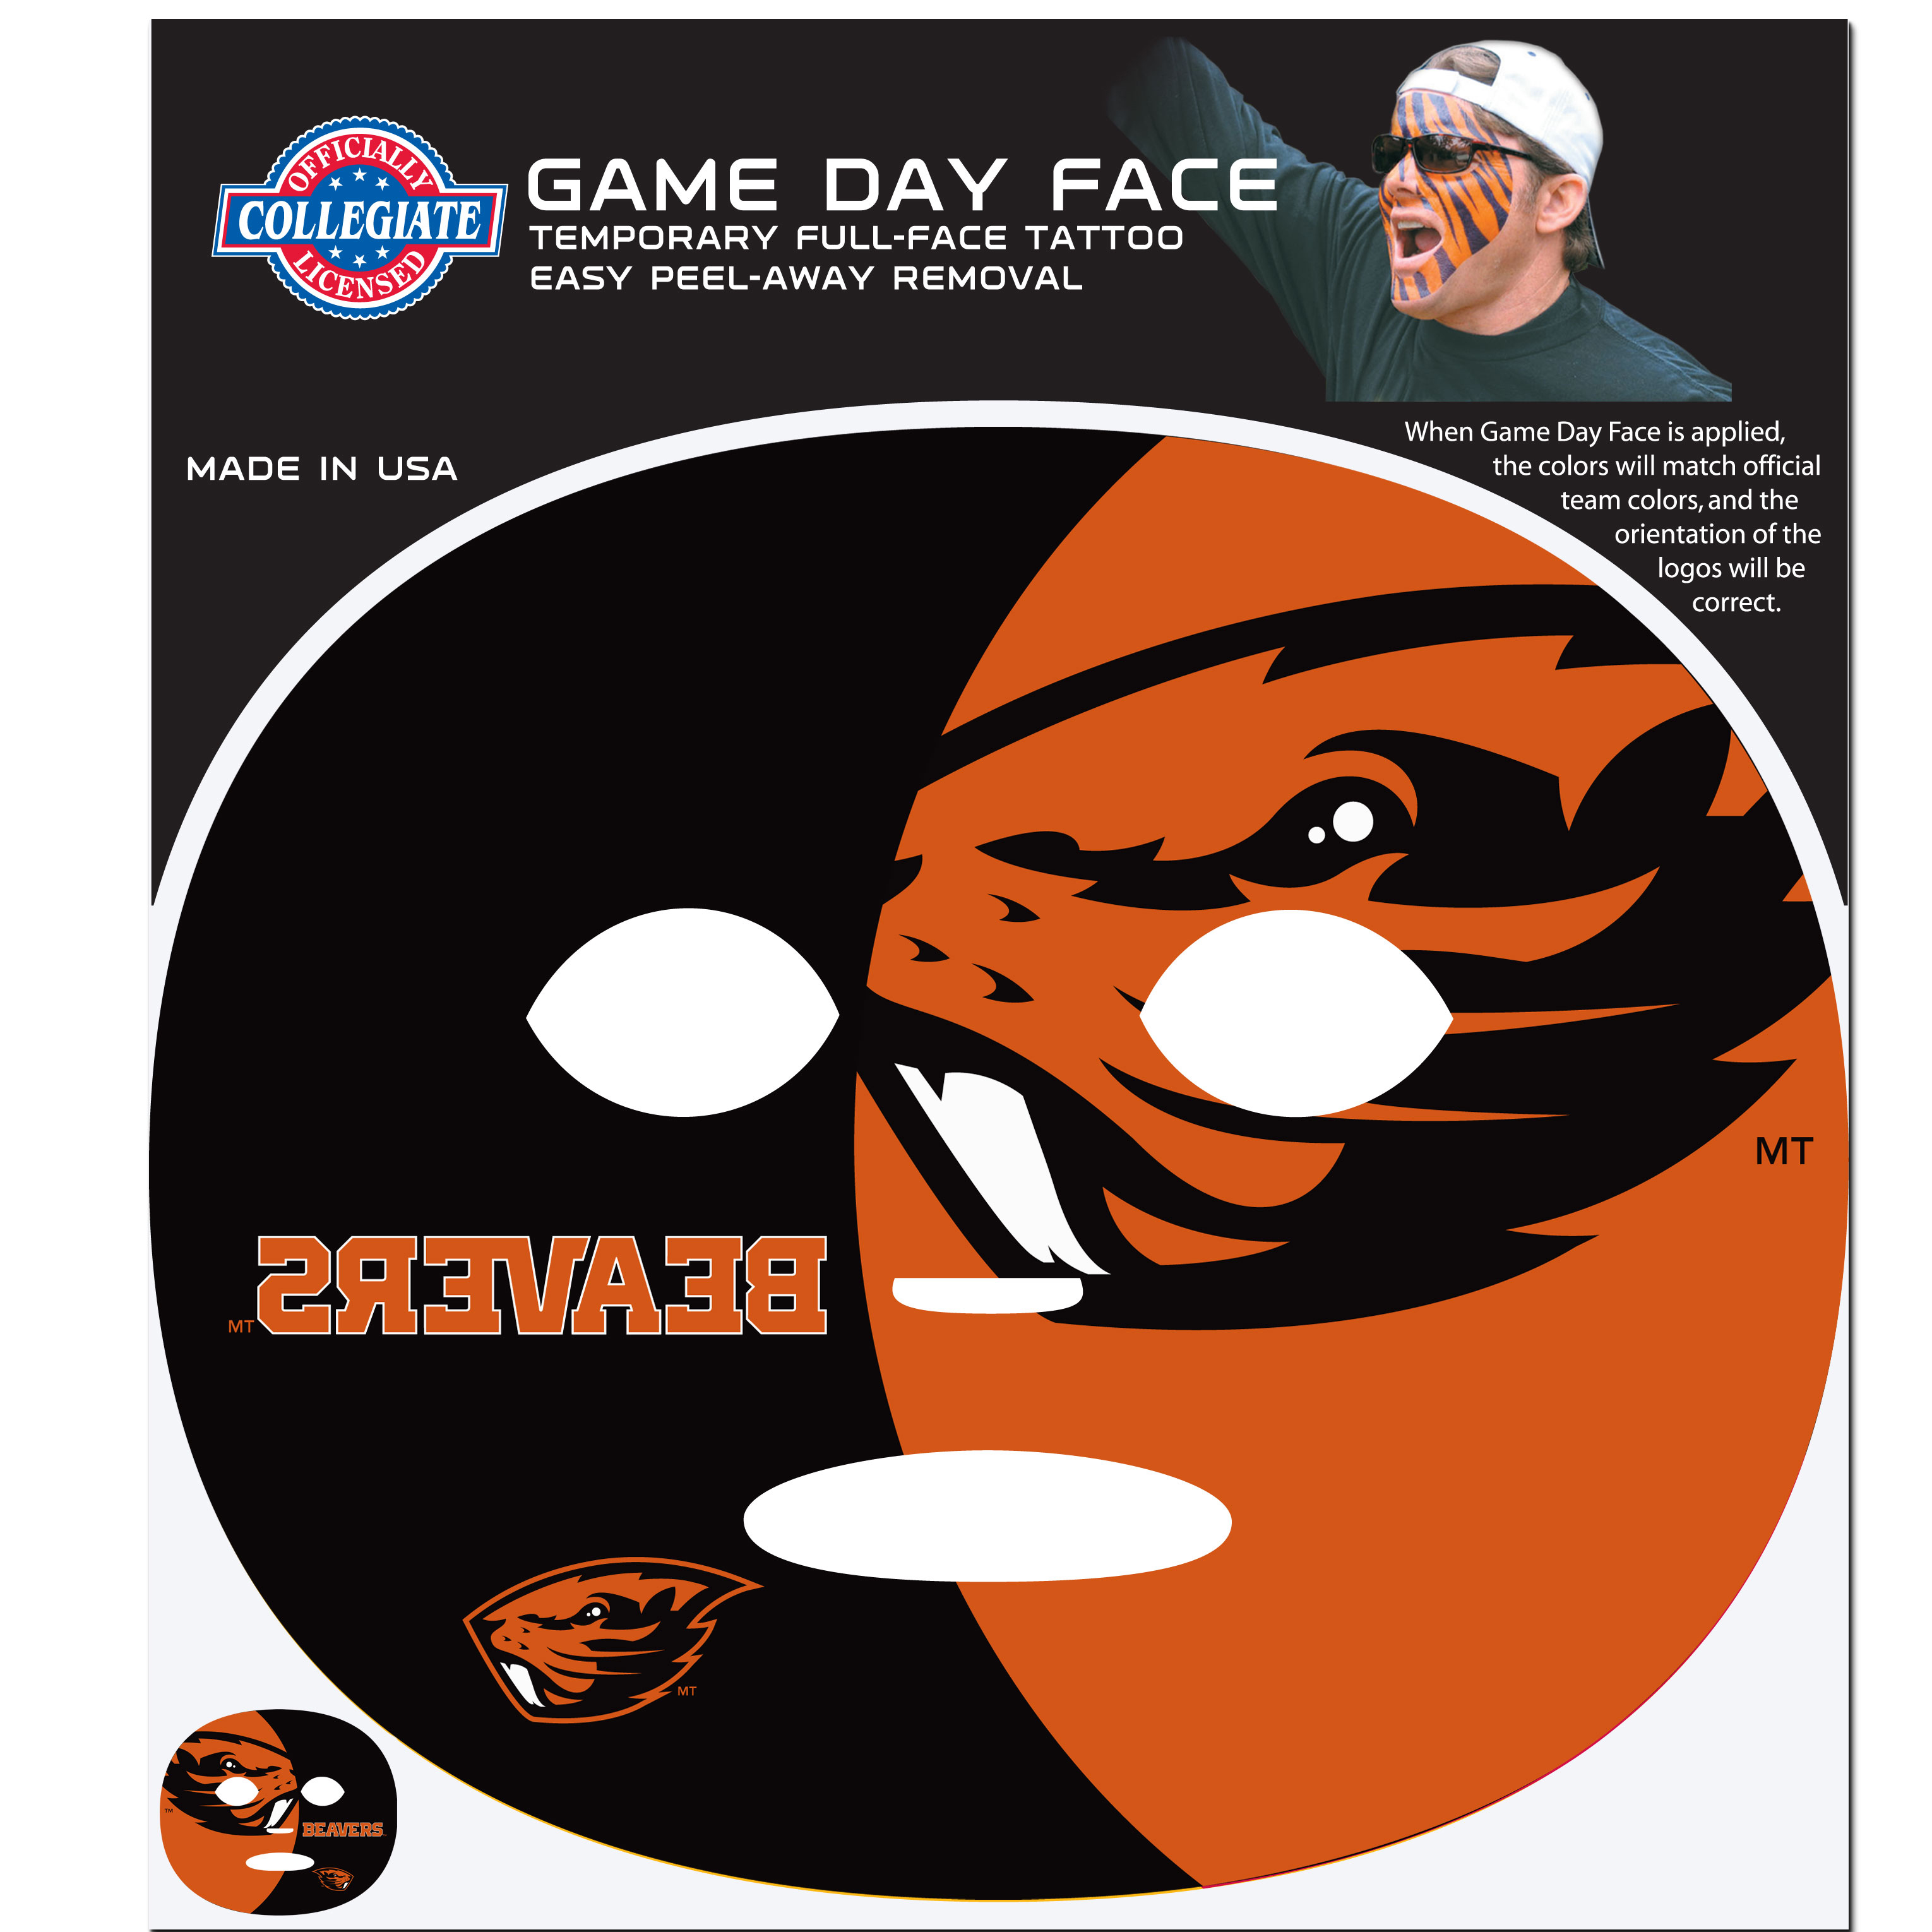 Oregon St. Beavers Set of 4 Game Day Faces - No better way to show your team pride than by painting your face. Siskiyou's Game Day Face Temporary Tattoo isn't your typical face paint. It is a water based application that doesn't smudge, smear or sweat off while you're wearing it and easily peels off after you're done celebrating your team's big Win! The temporary tattoo is large enough to trim down to fit your face. Our Game Day Face Temporary Tattoo's are fun for fans of all ages. You may have seen our product before, these are the same Temporary Face Tattoos as pitched on ABC's Shark Tank.